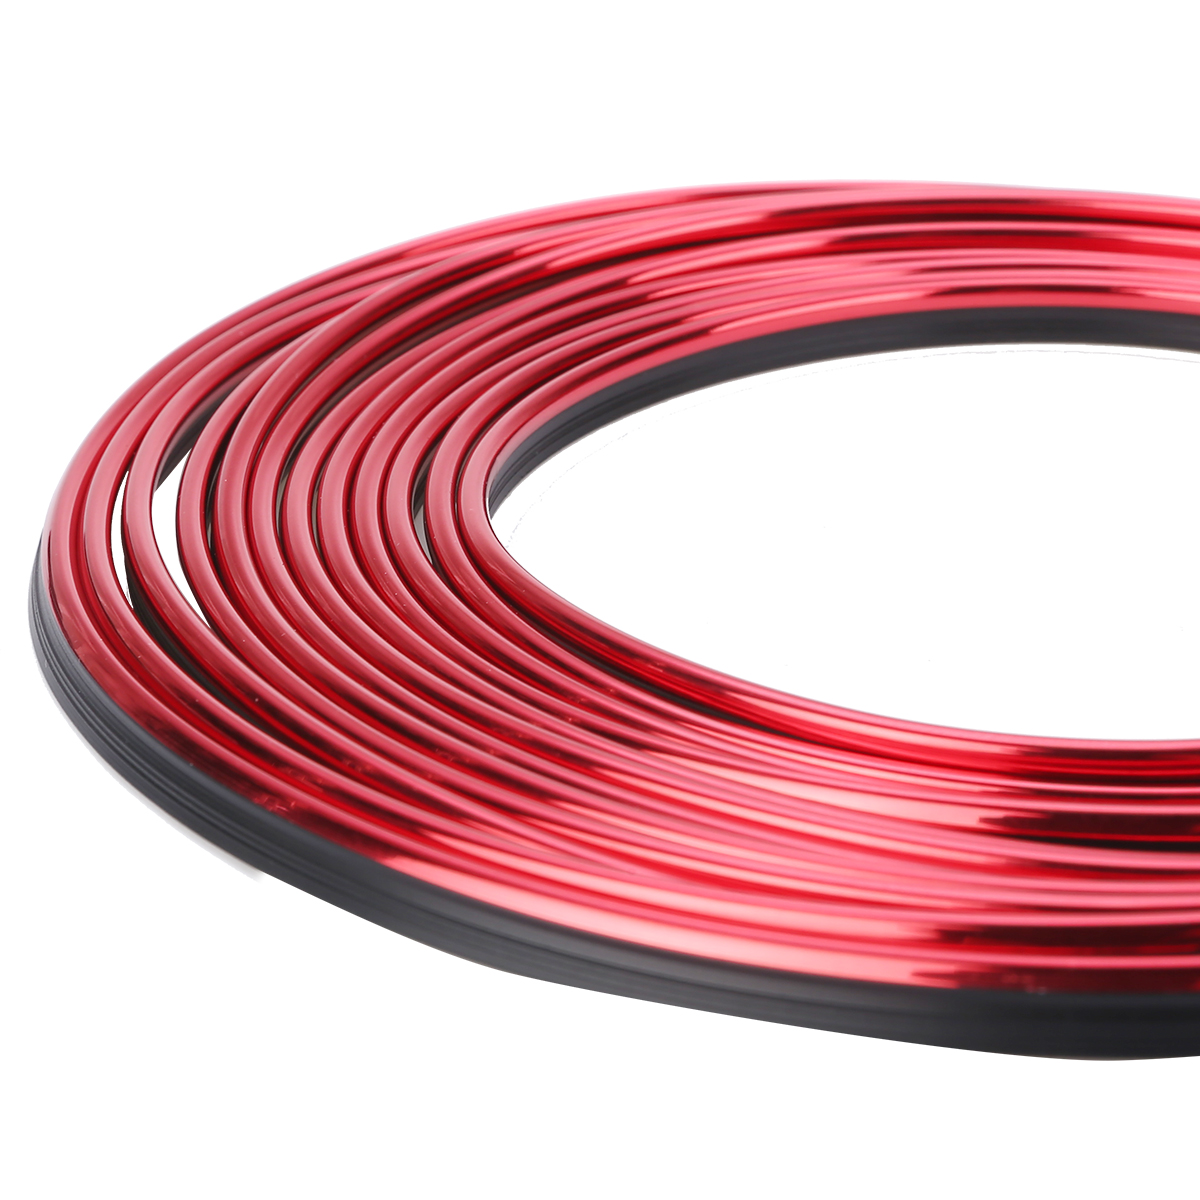 5M Red Car Styling Universal DIY Flexible Interior Moulding Trim Strips Strip Dashboard Decoration Car Accessories